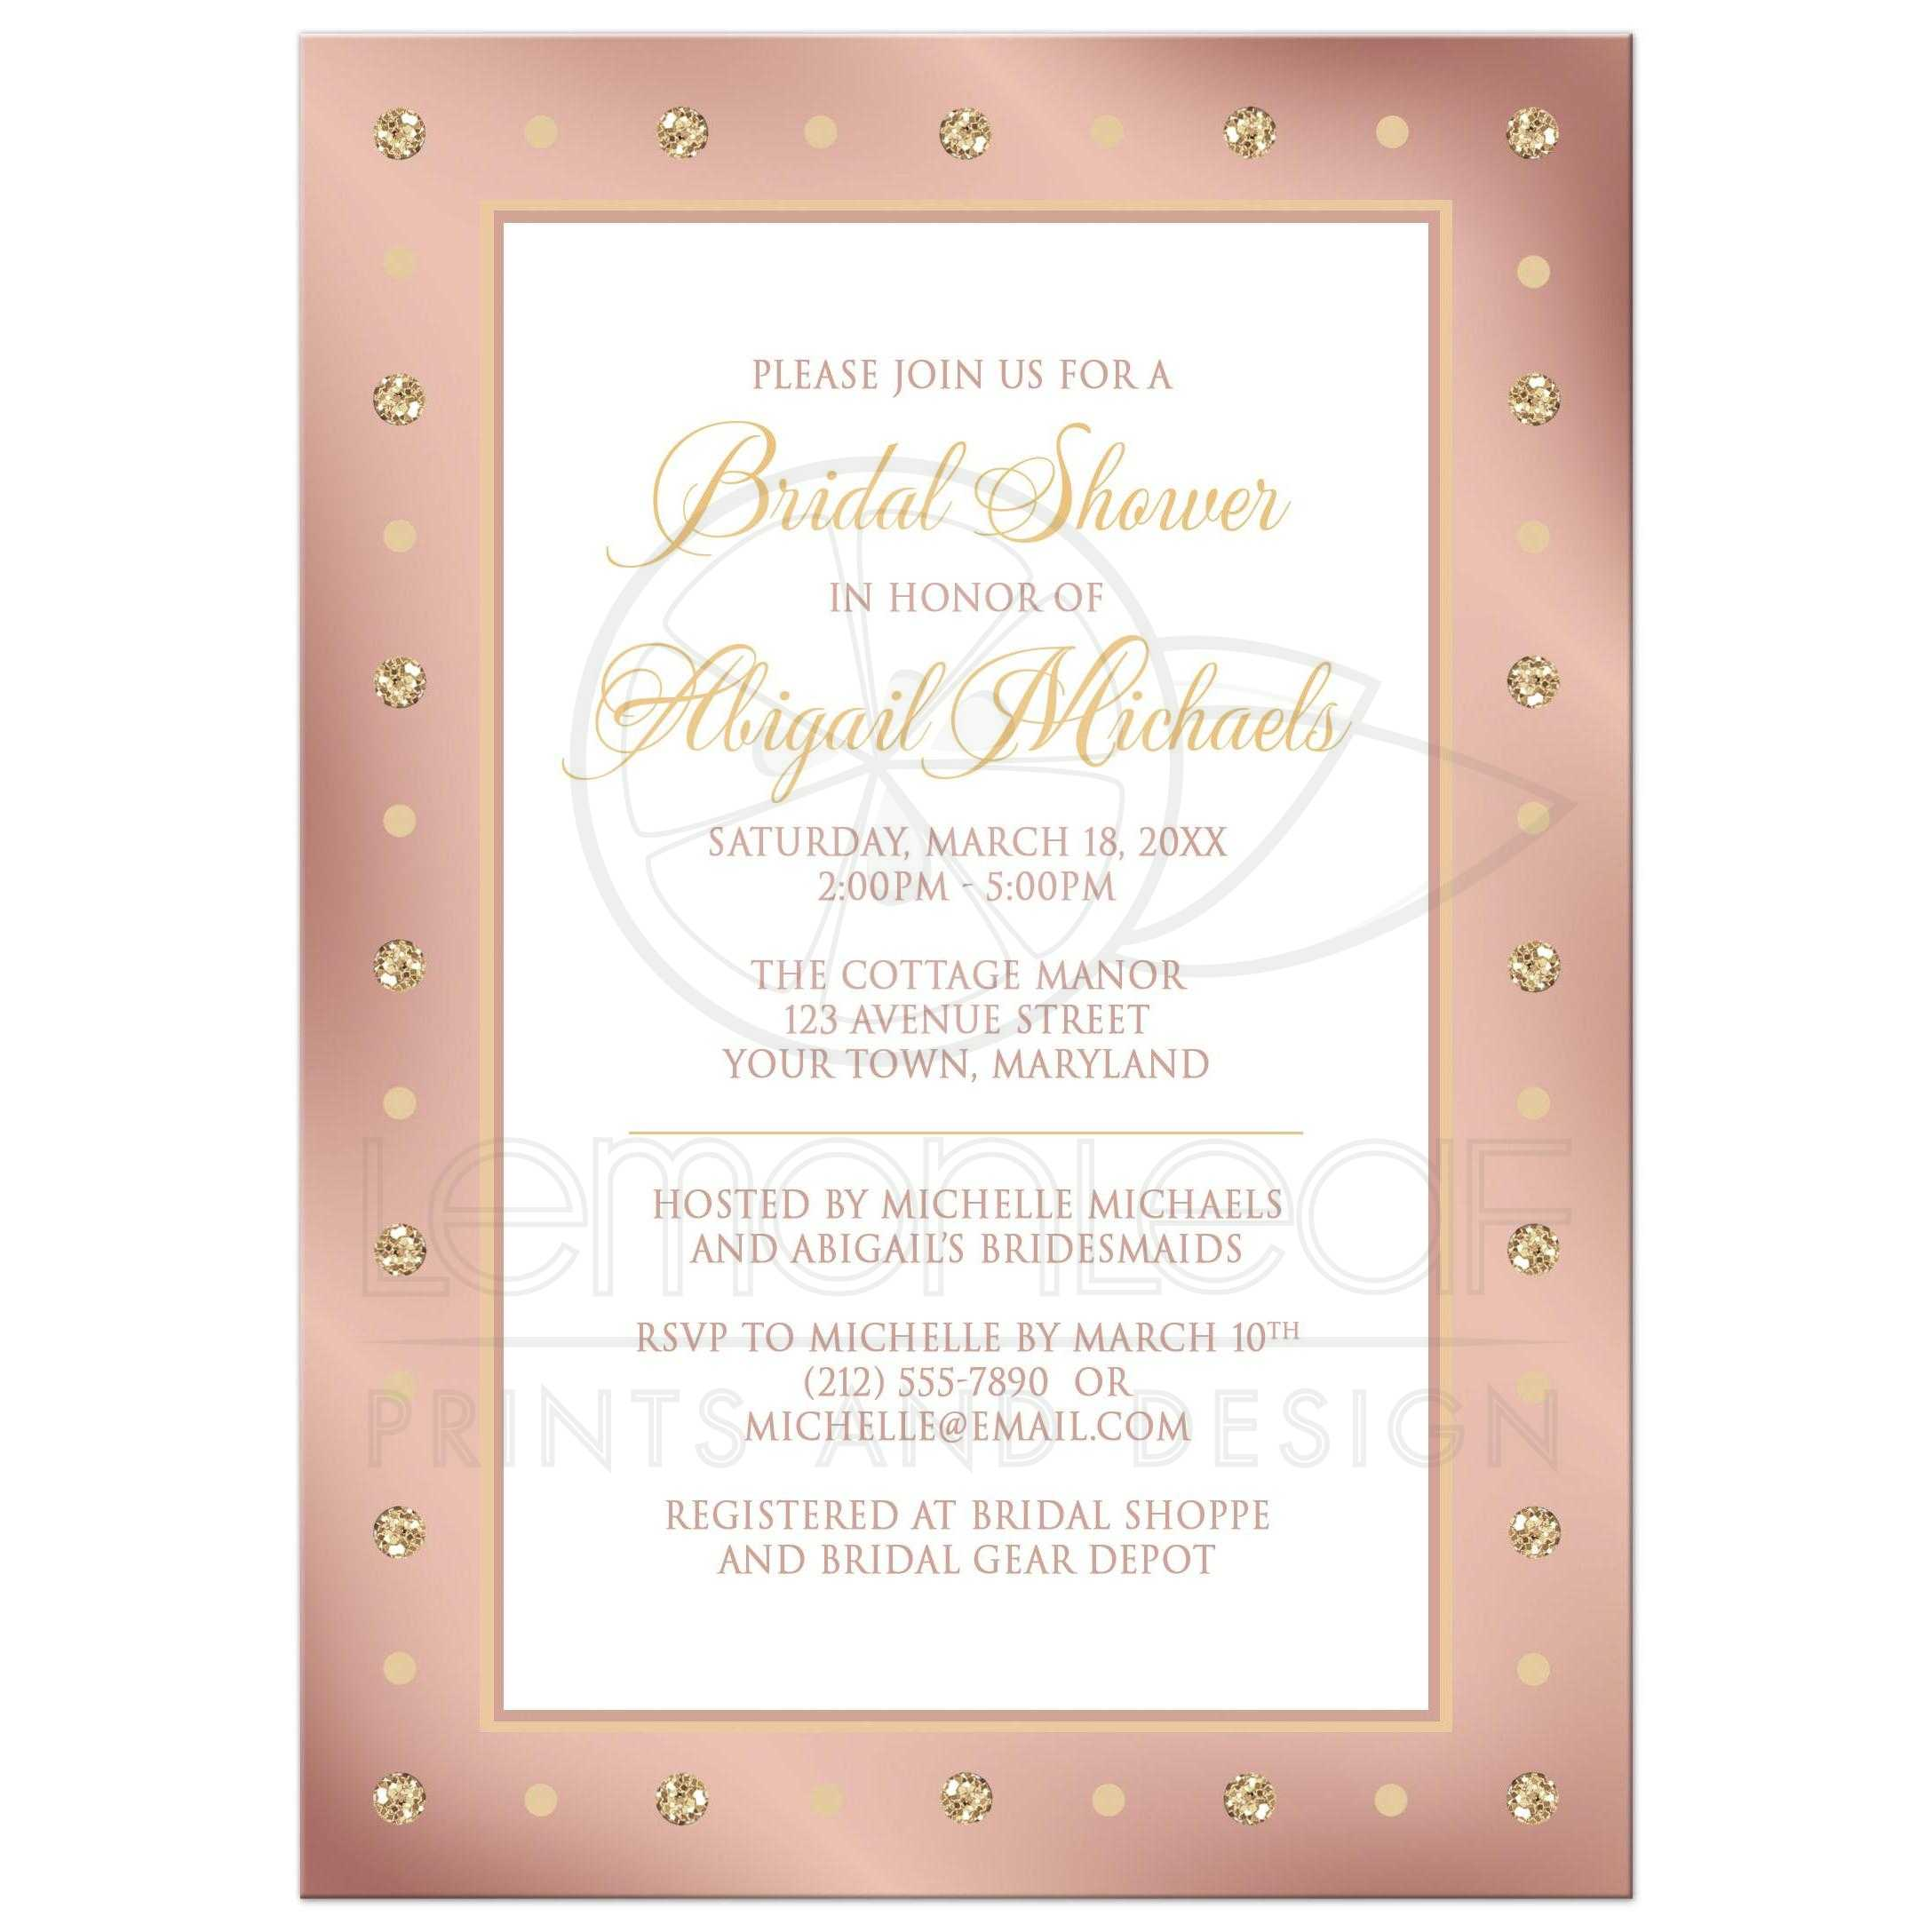 Bridal shower invitations elegant border rose gold filmwisefo